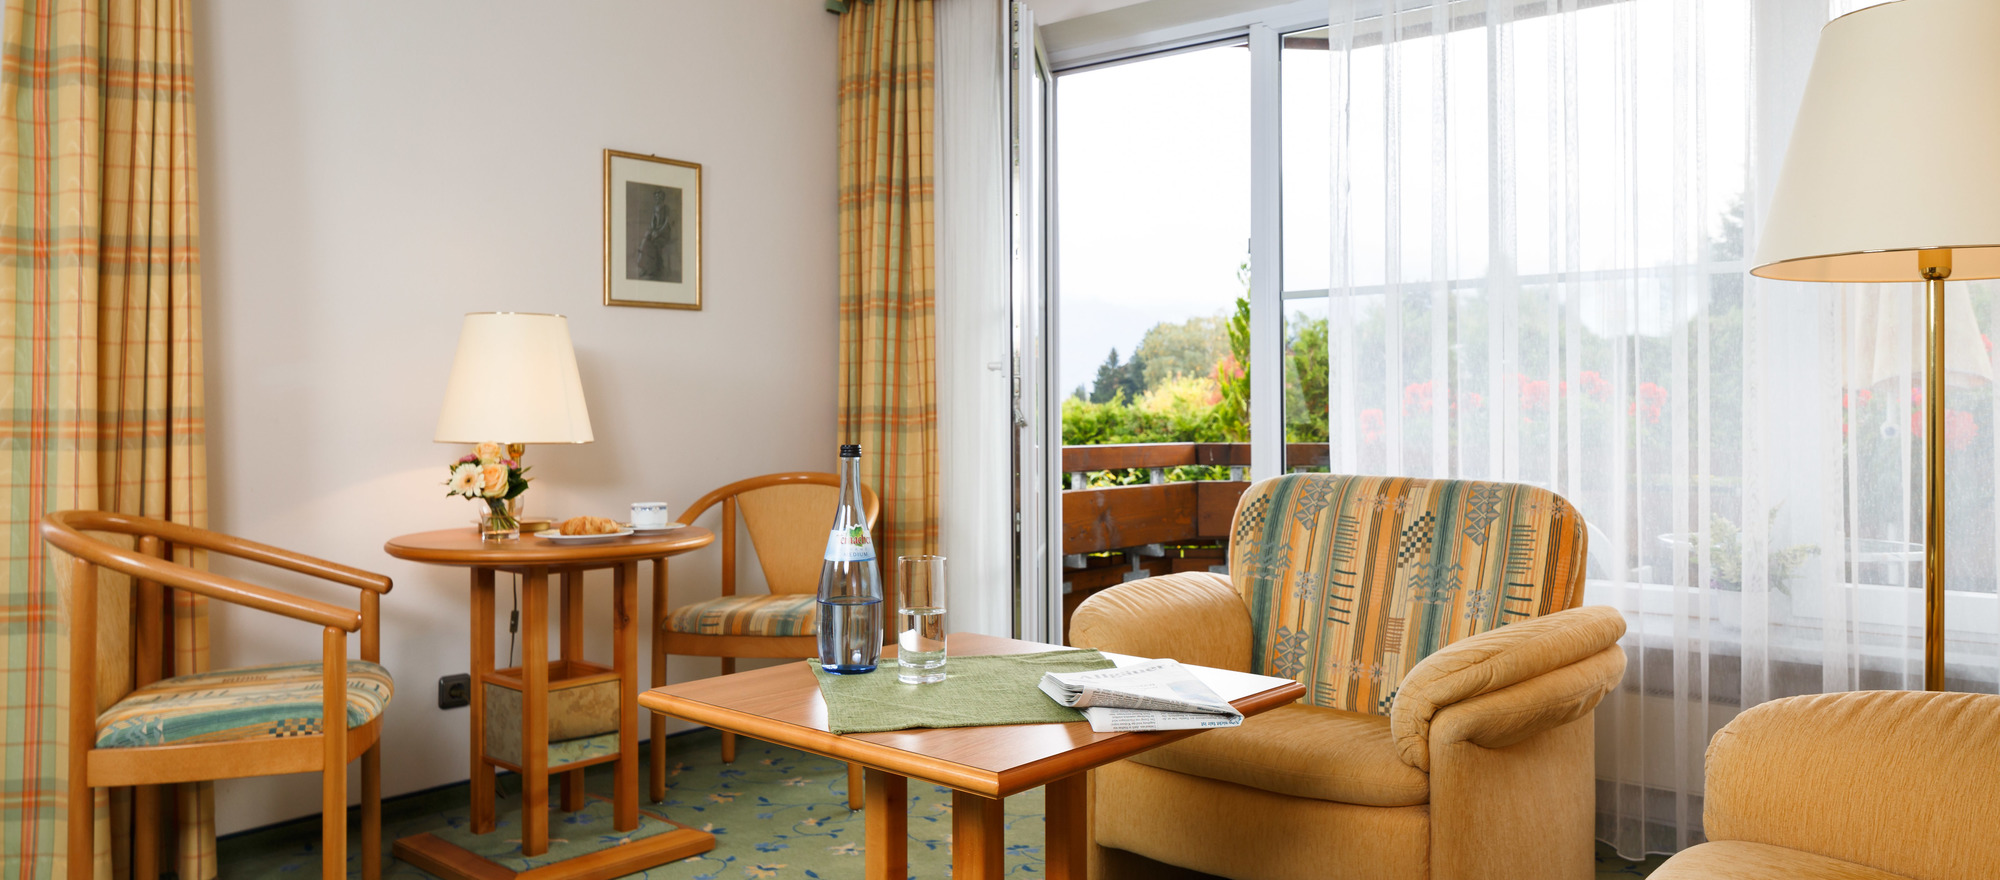 Superior room with view on the Oberstdorf mountains in Ringhotel Ferienhotel Nebelhornblick in Oberstdorf, 4 -star hotel in the Allgaeu